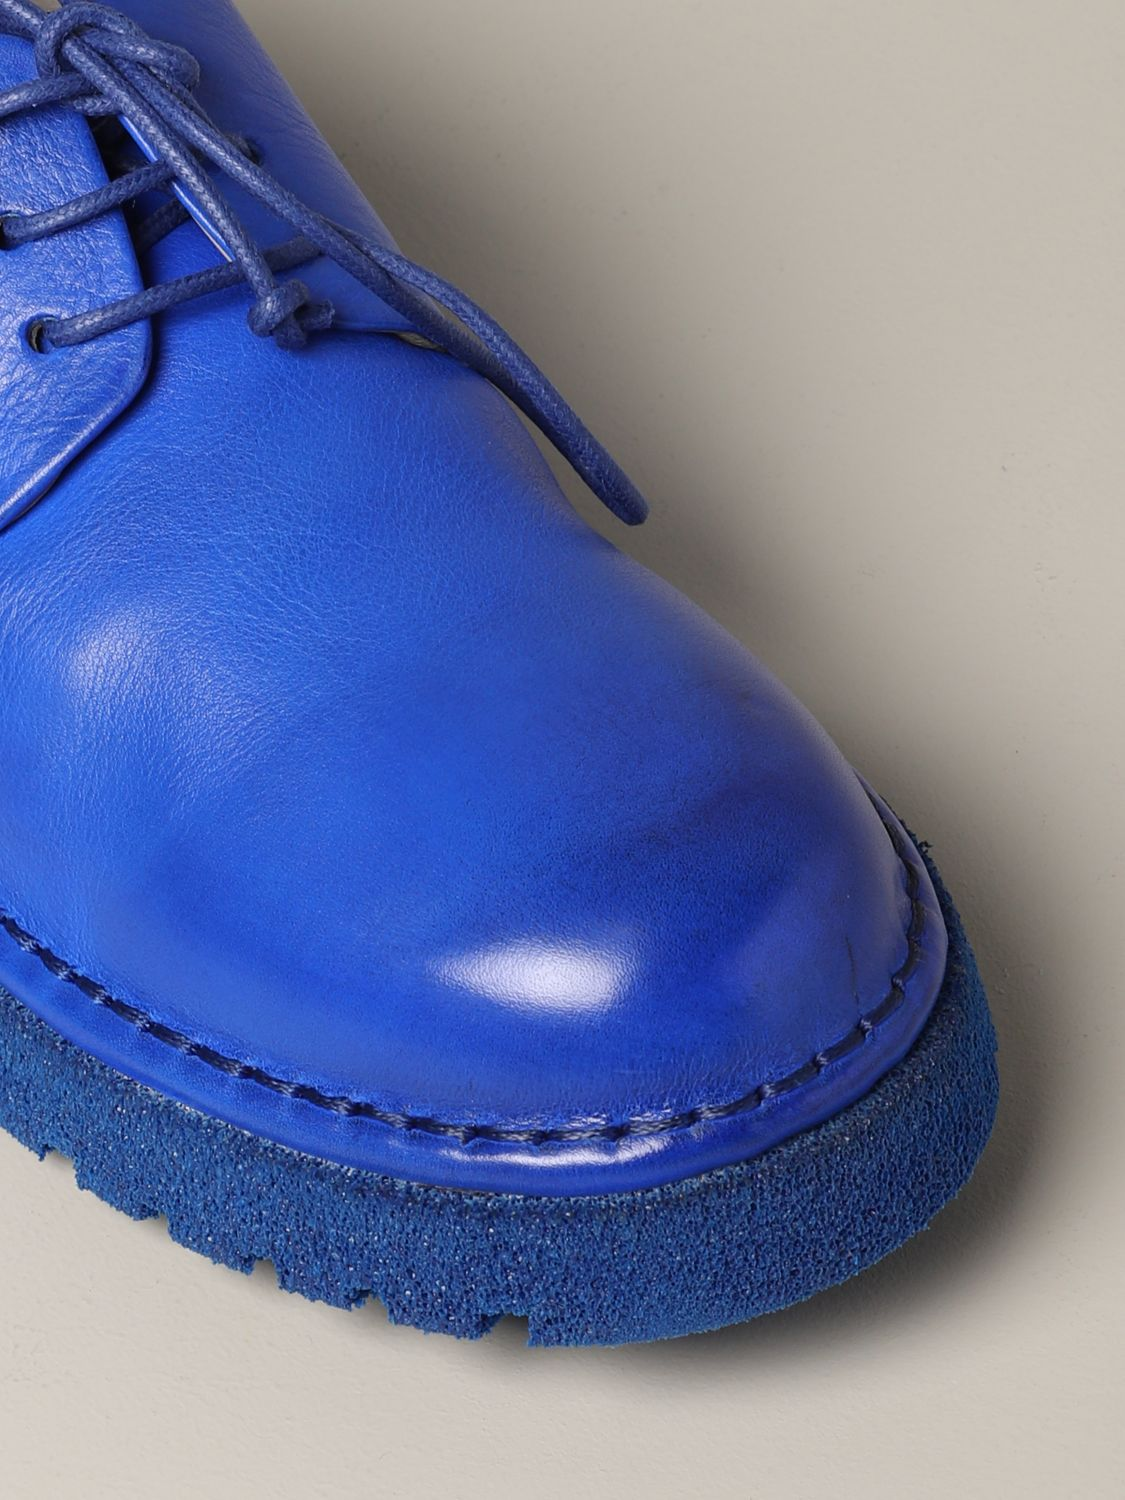 Marsèll Derby Pallottola pomice in leather blue 4